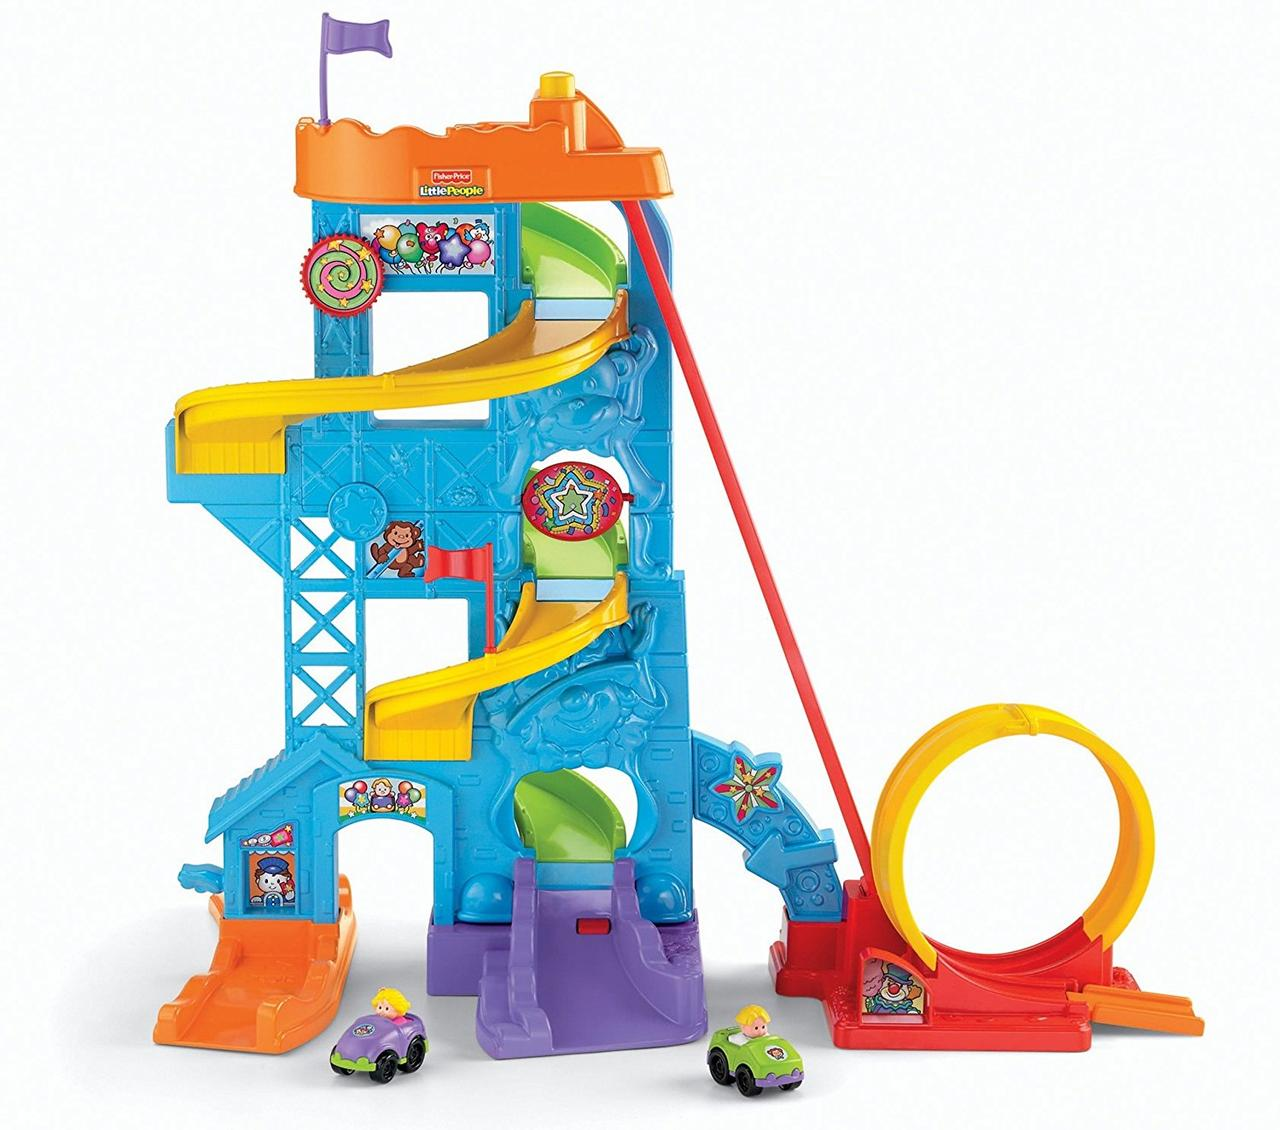 Fisher-Price парк развлечений Little People эко упаковка Loops n Swoops Amusement Park